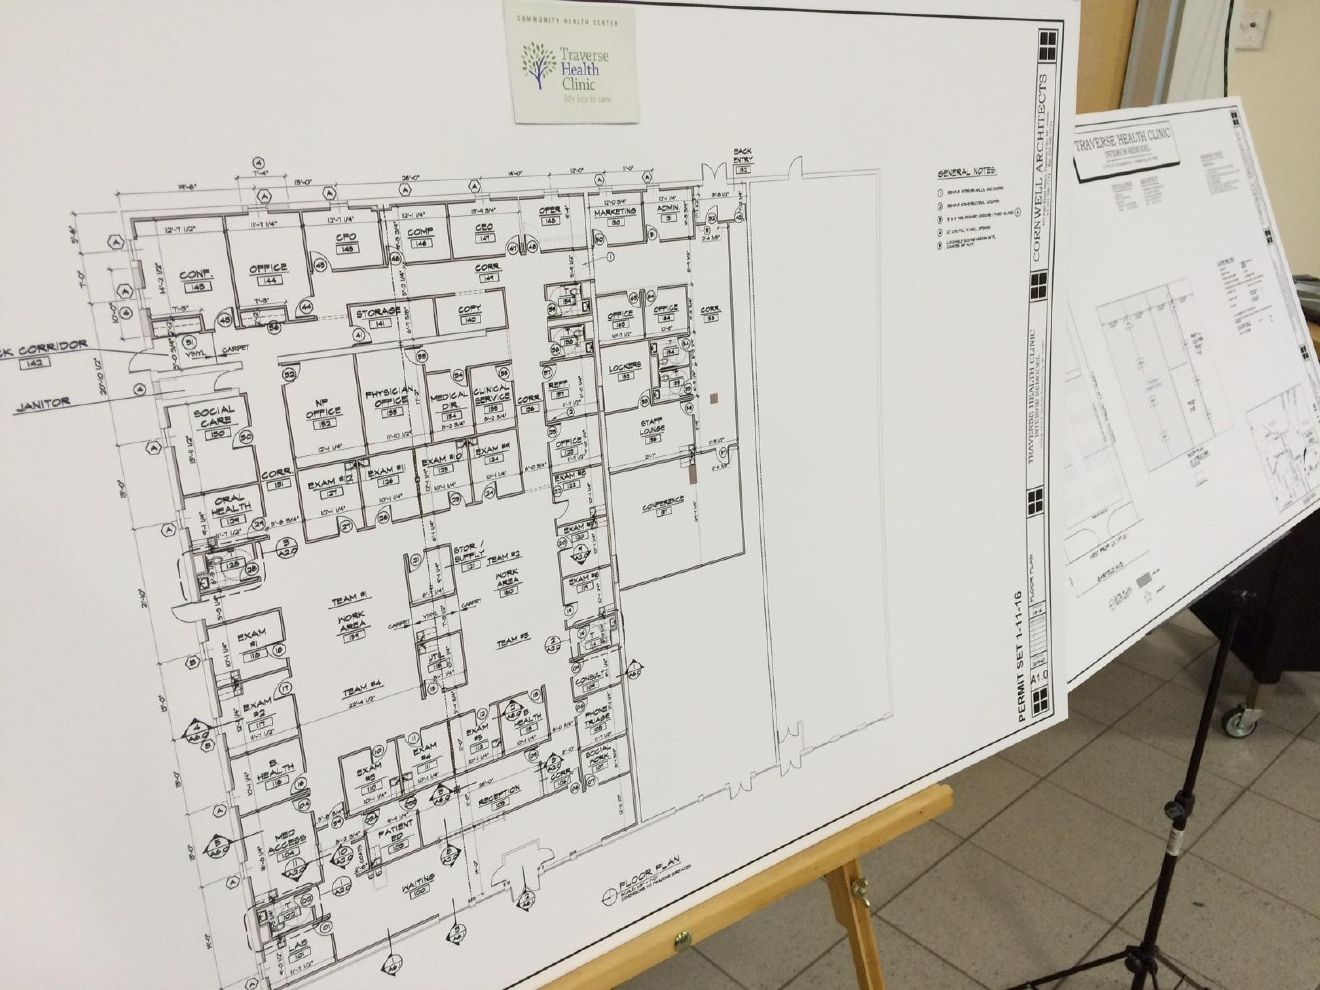 Traverse health clinic in traverse city is getting closer to opening